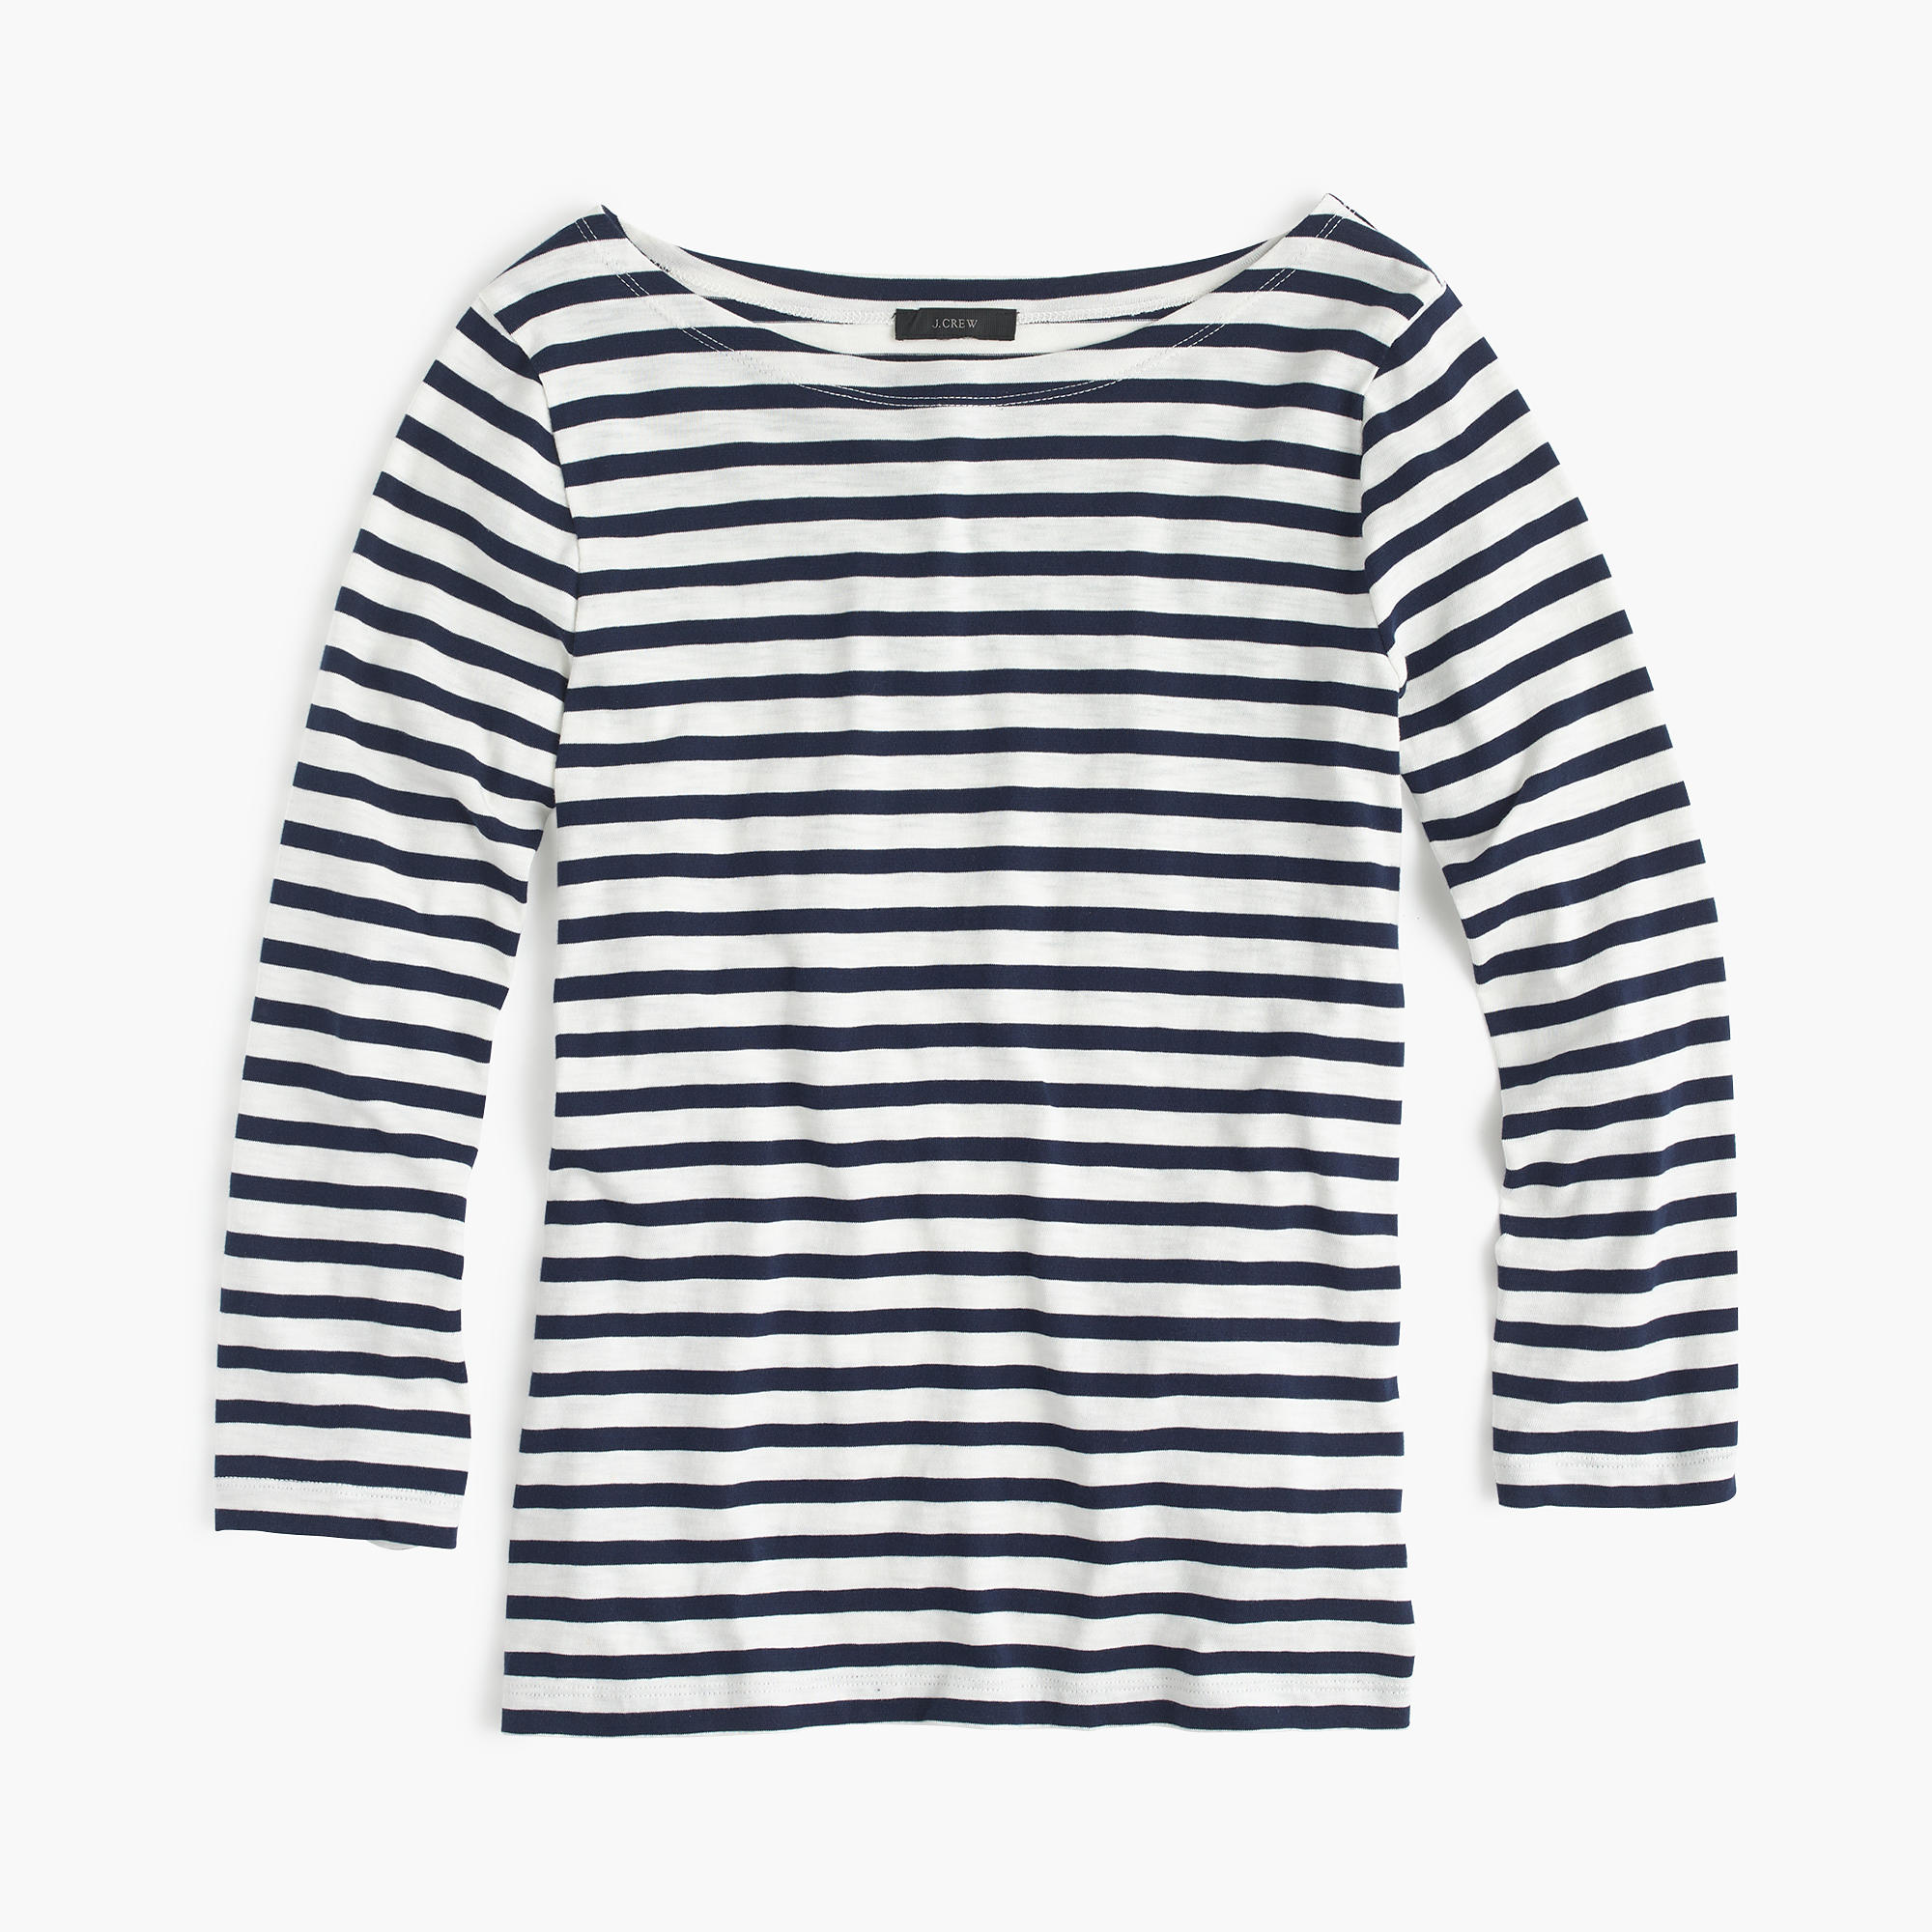 J. Crew striped boatneck tee—15 wardrobe classics for $150 and under